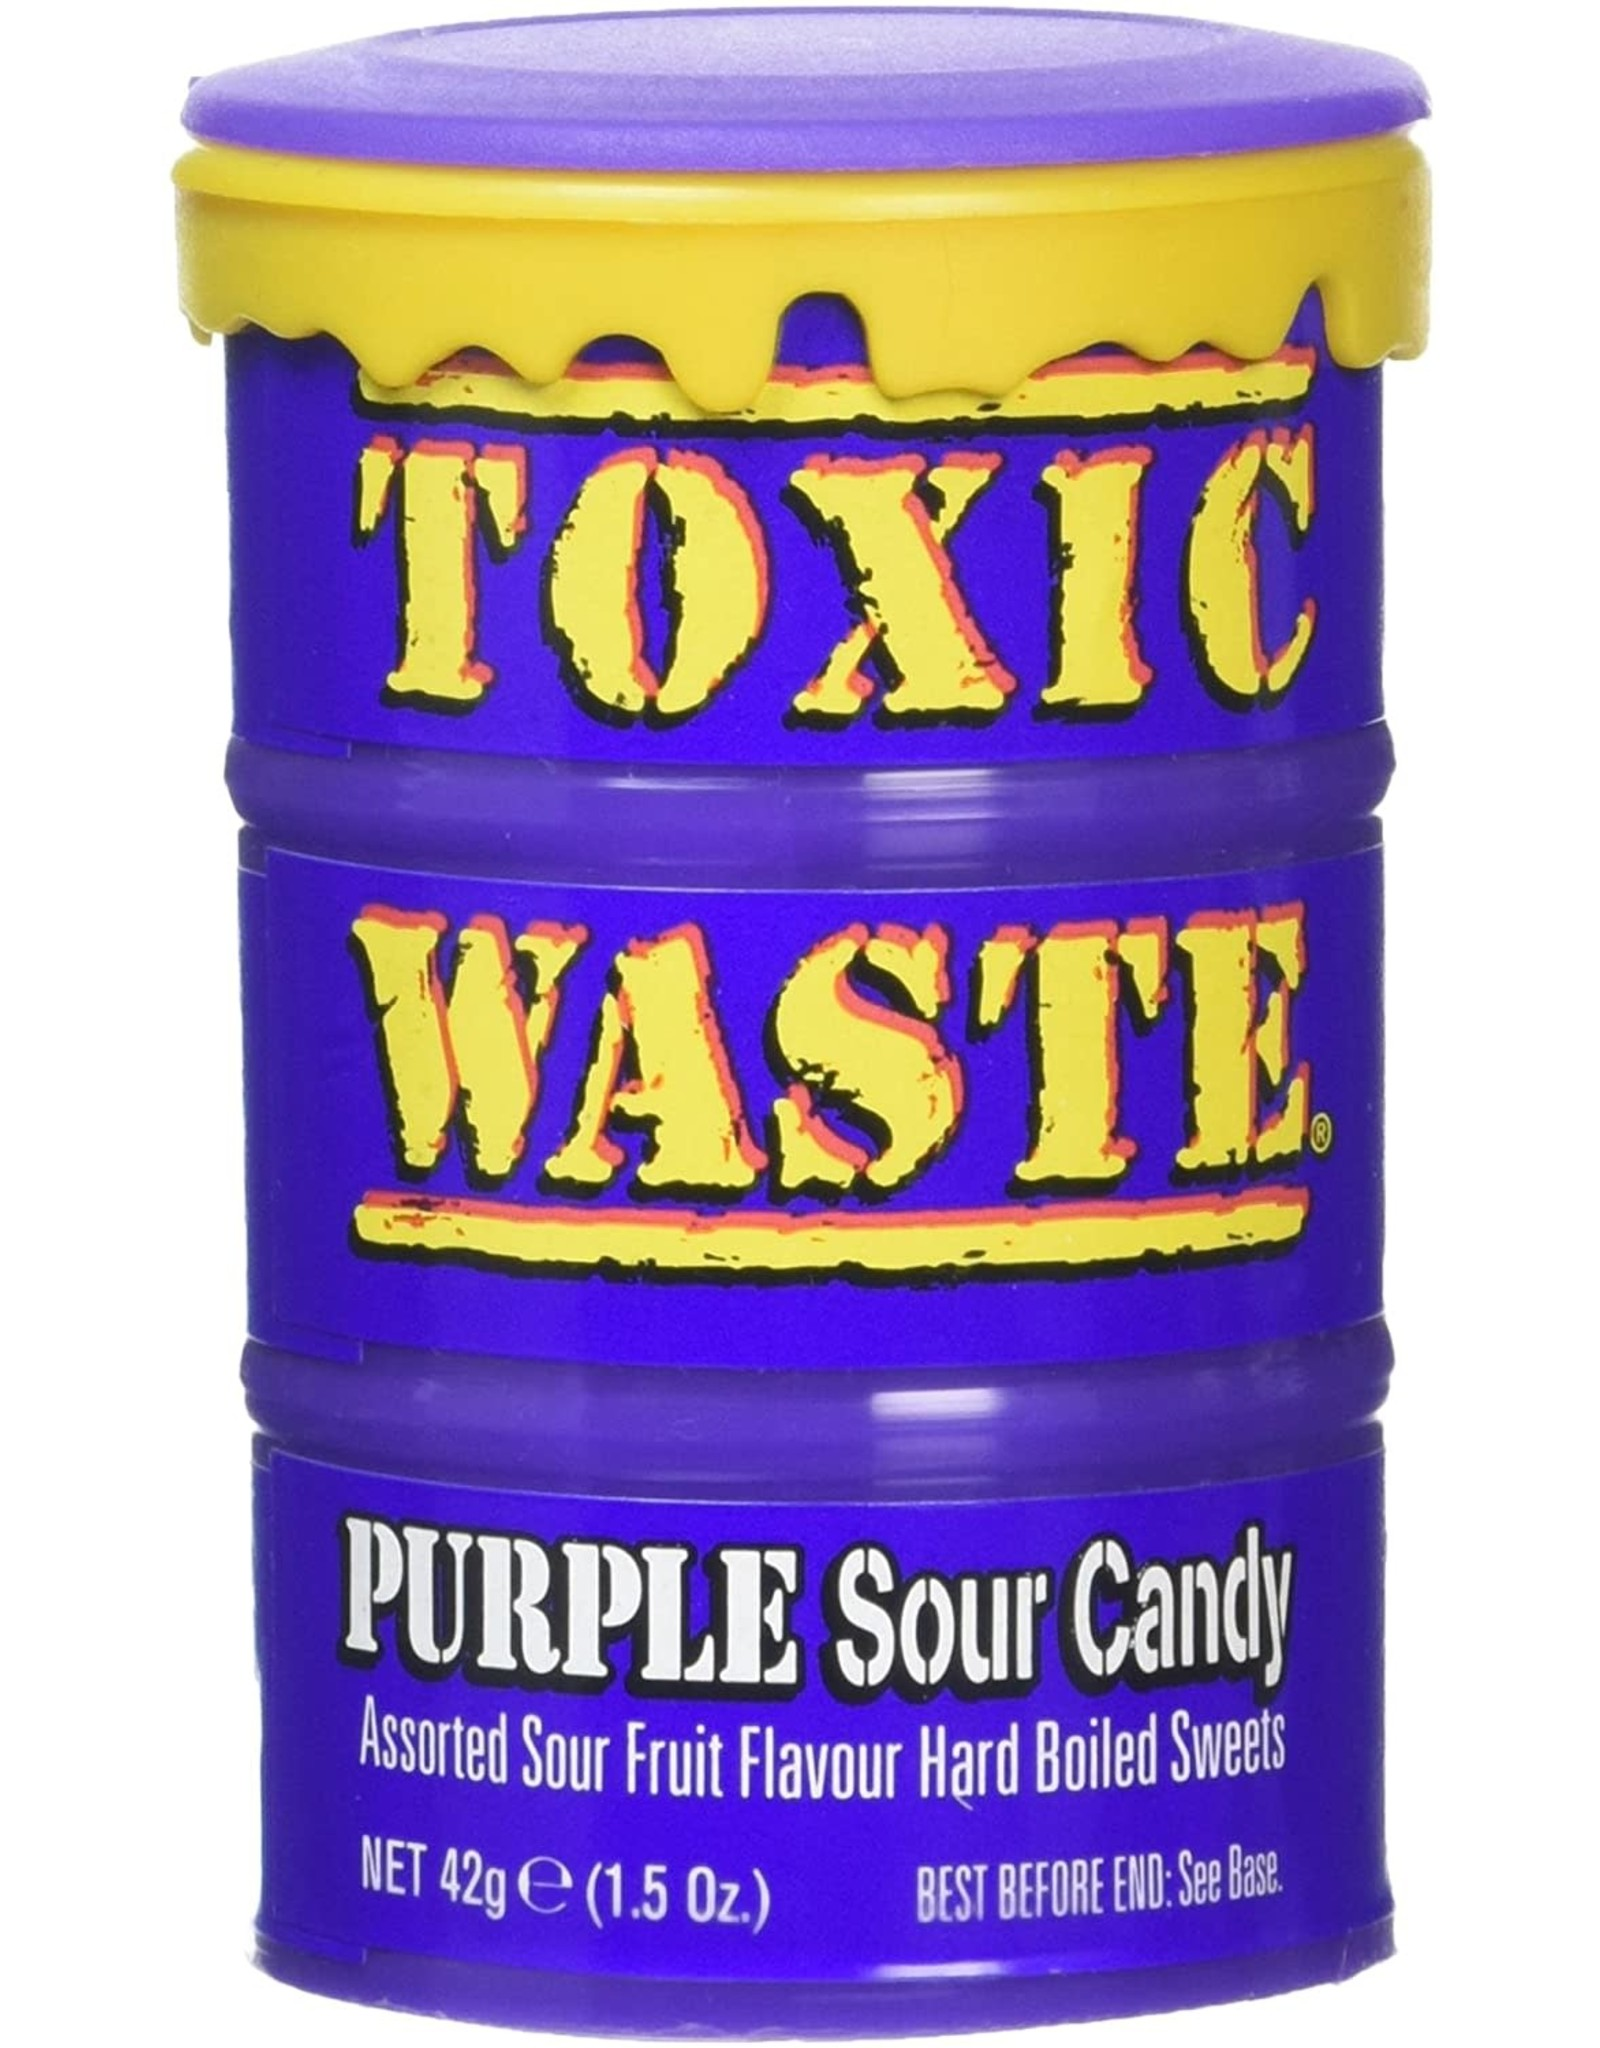 Toxic Waste - Purple Sour Candy Drum - 42g